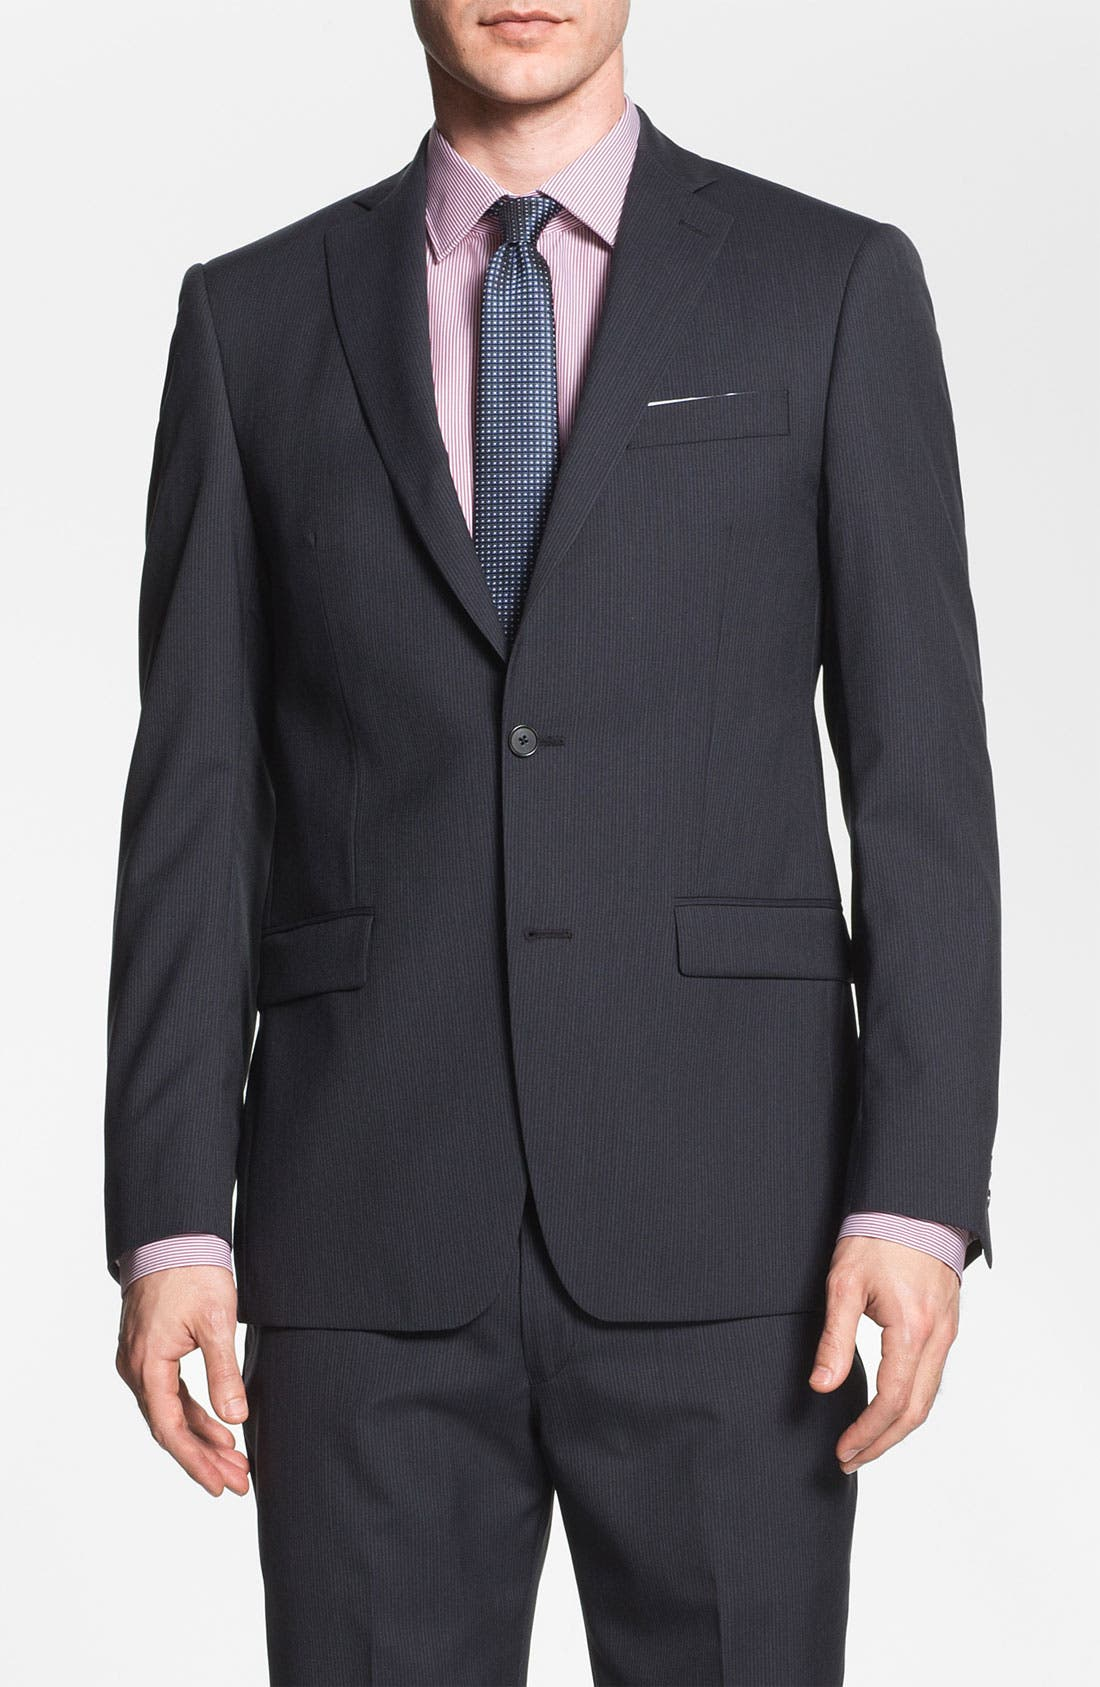 Main Image - Michael Kors Trim Fit Stripe Suit